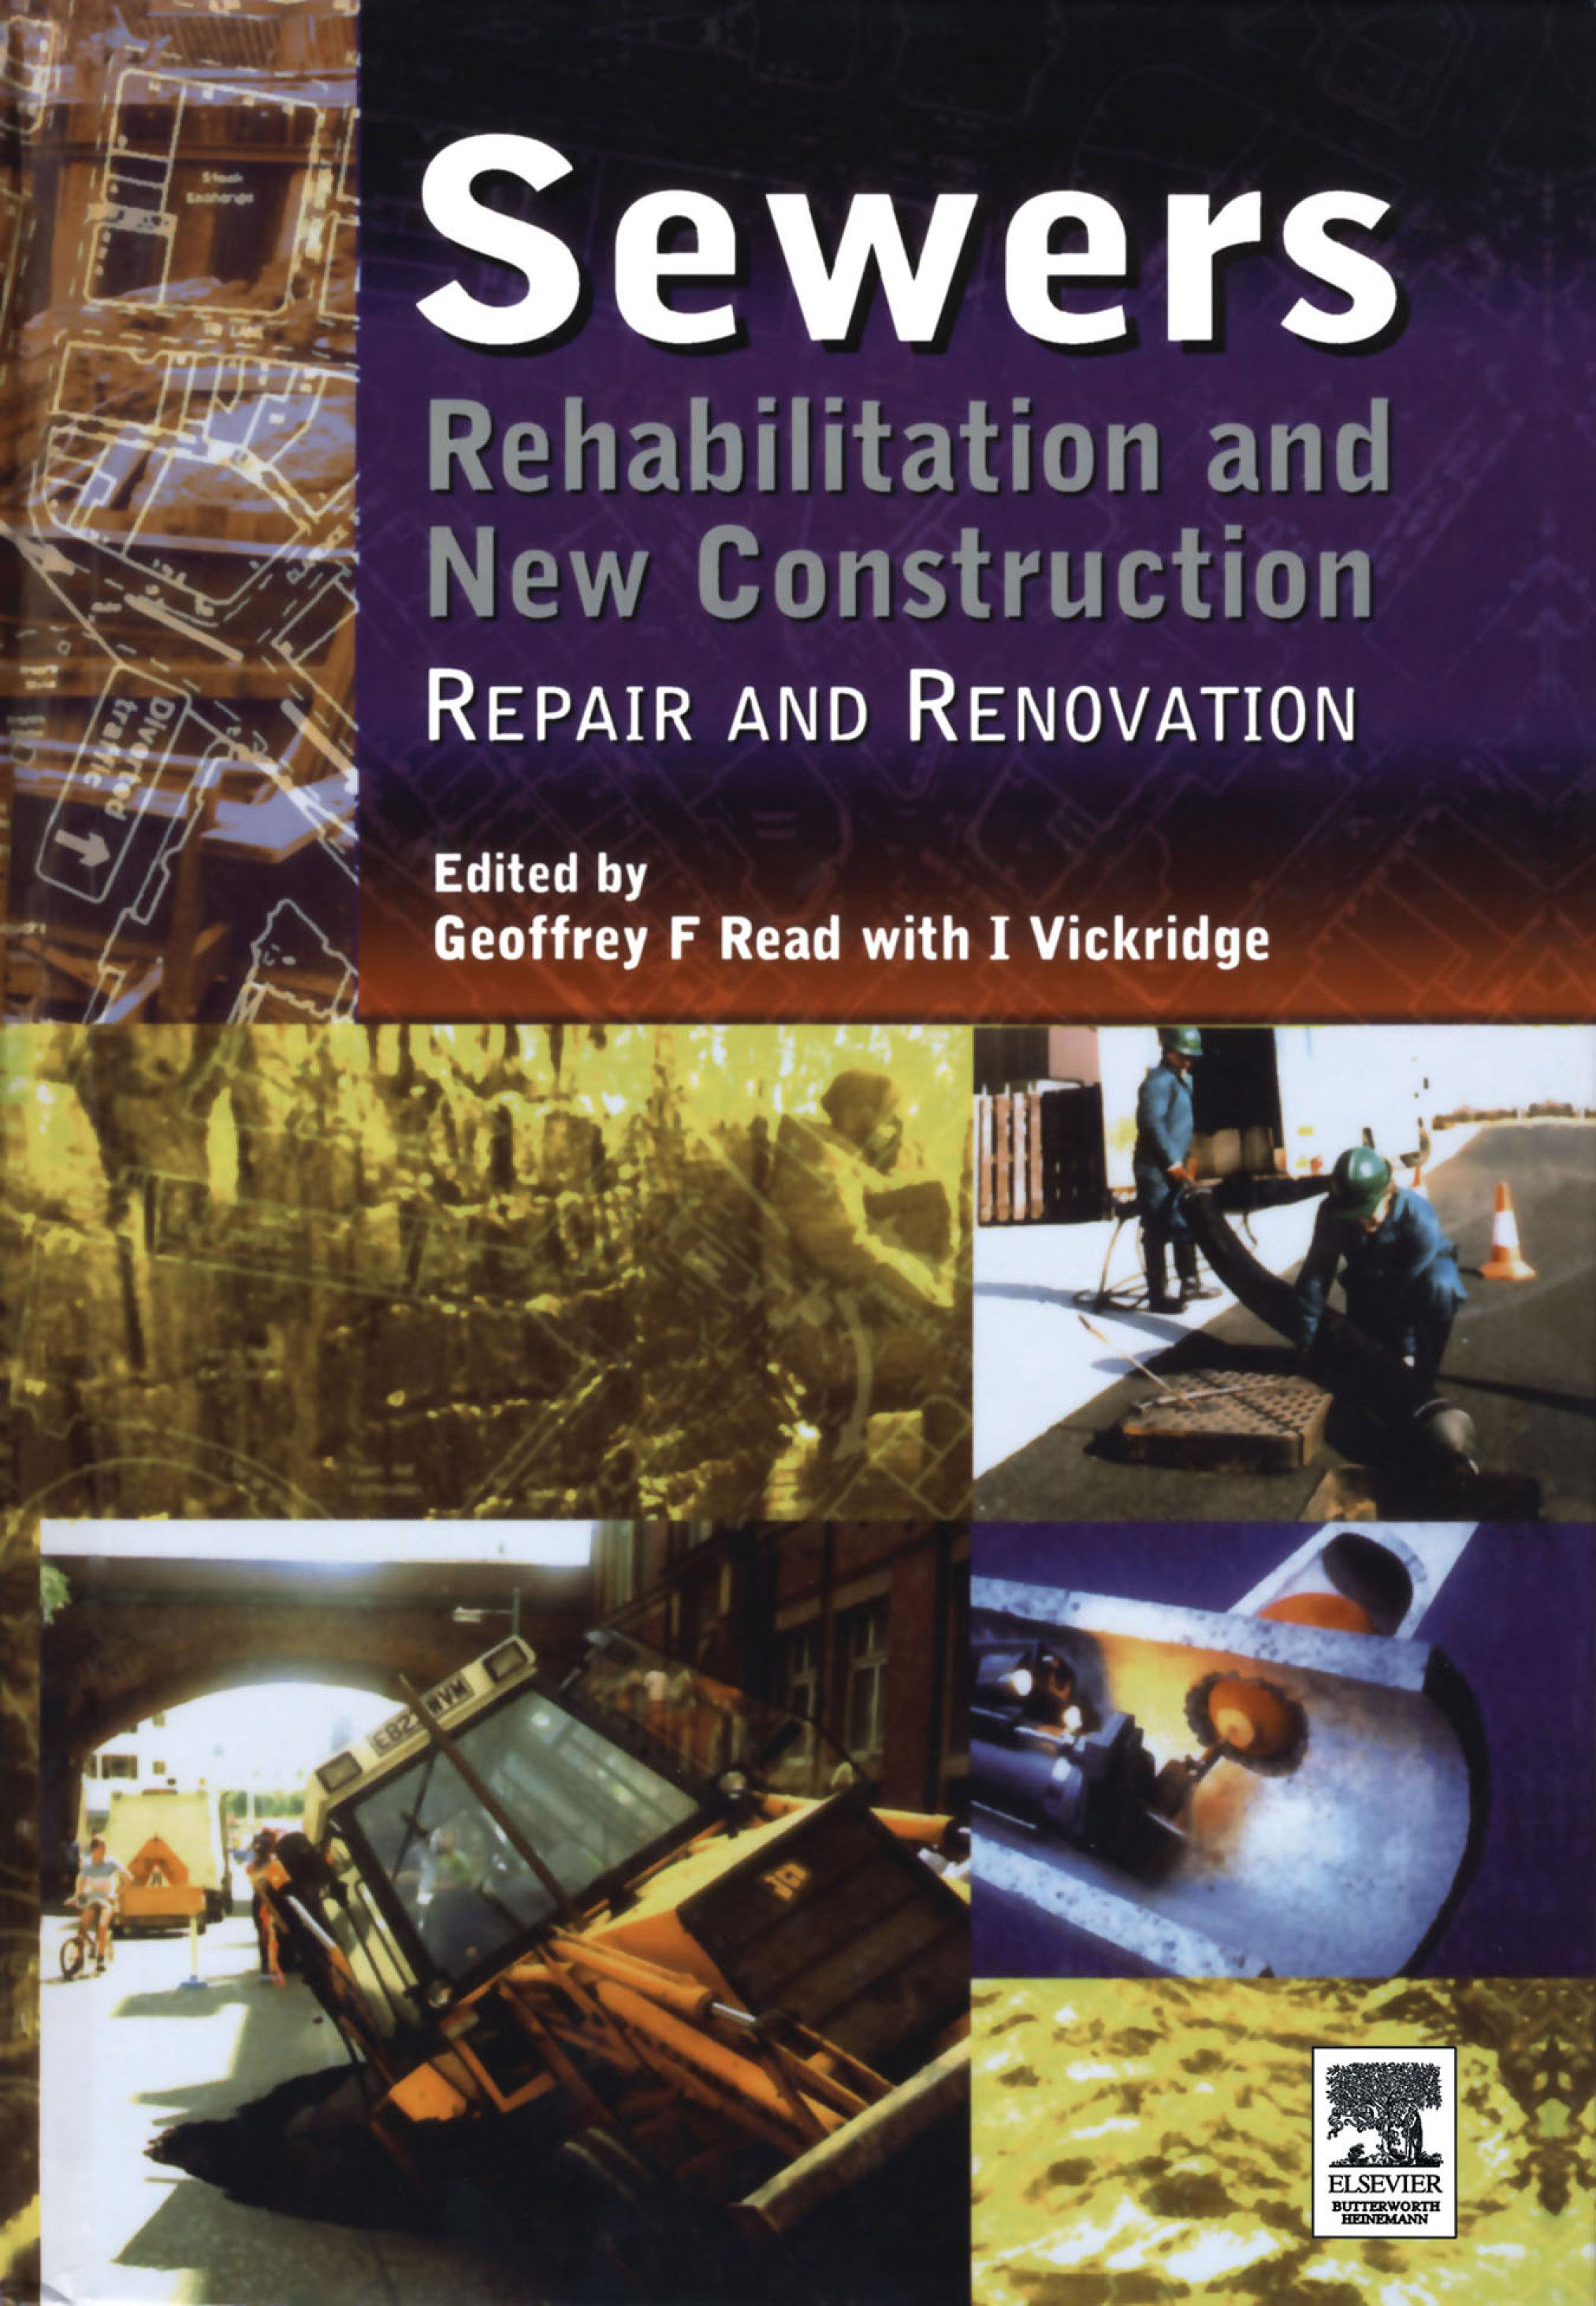 Sewers: Repair and Renovation: Repair and Renovation